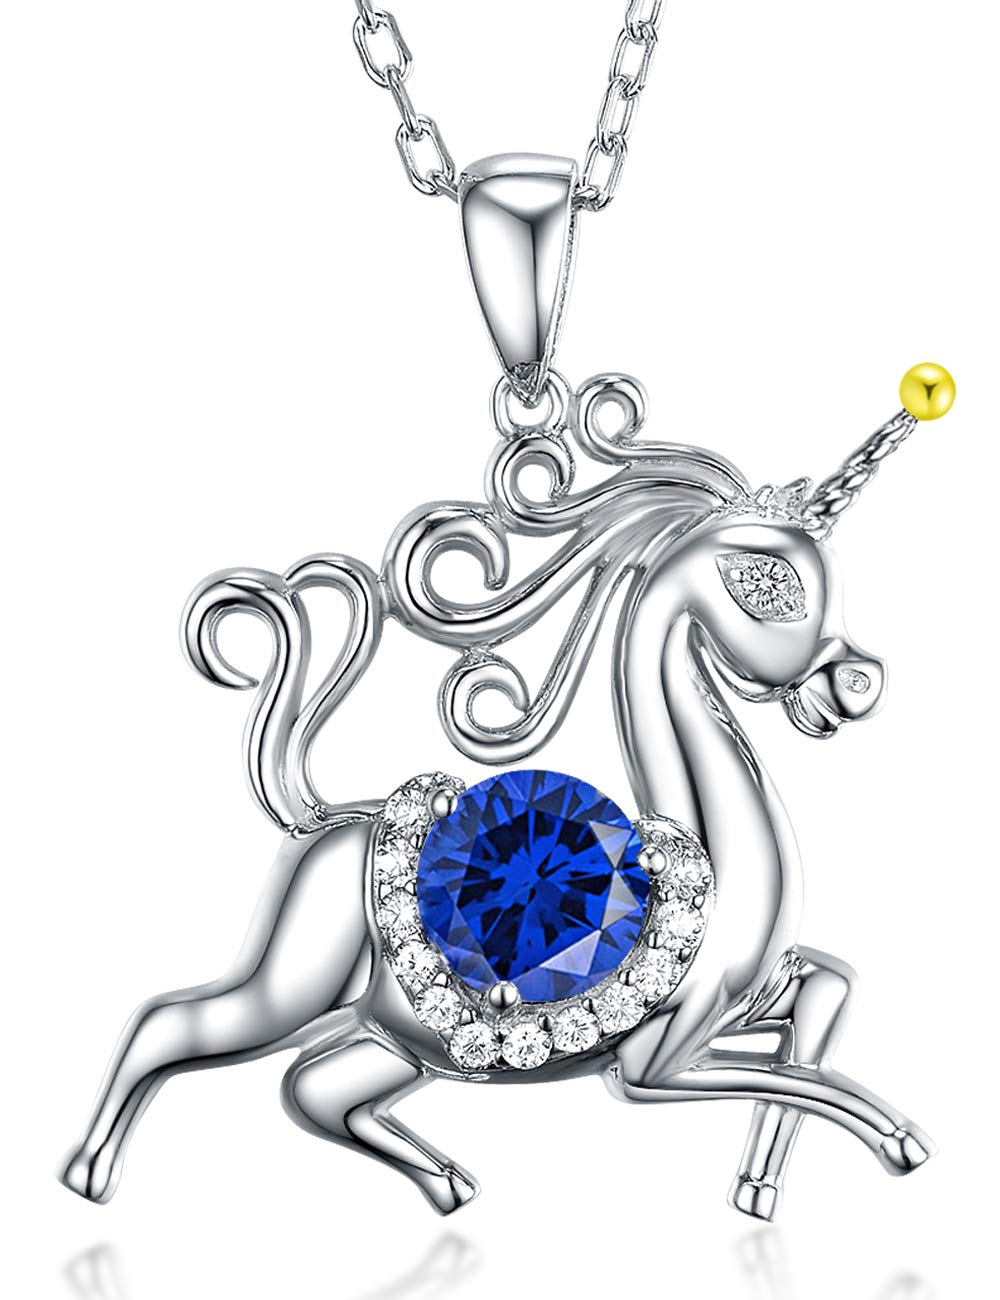 Birthday Gifts for Daughter Blue Sapphire Jewelry Unicorn Necklace for Teen Girls Granddaughter Sterling Silver Animal Necklace